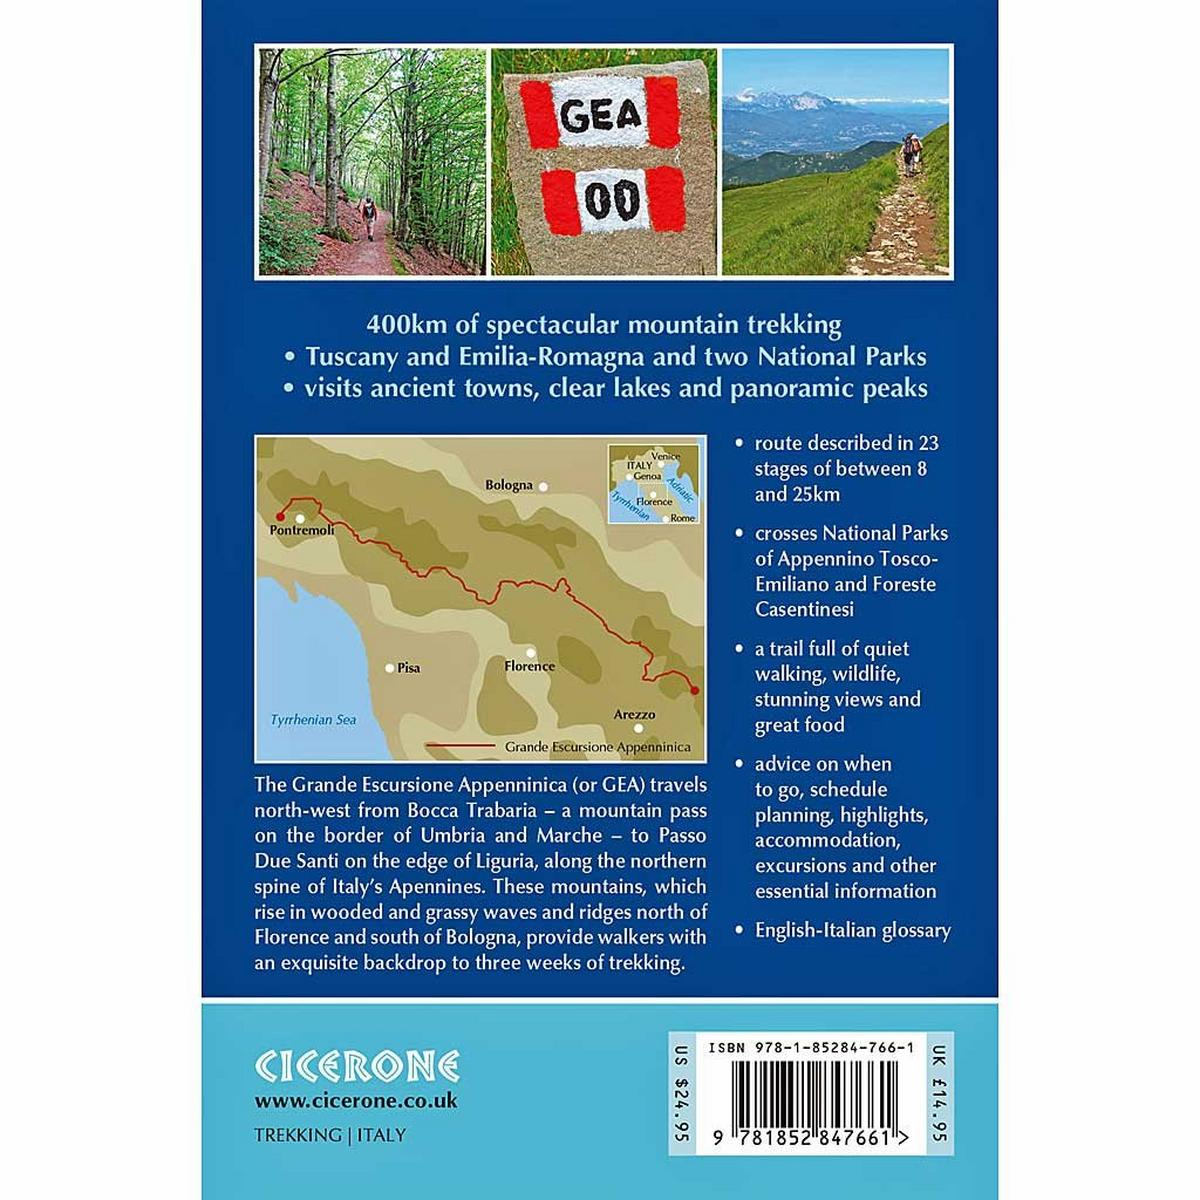 Cicerone Guide Book: Trekking in the Apennines